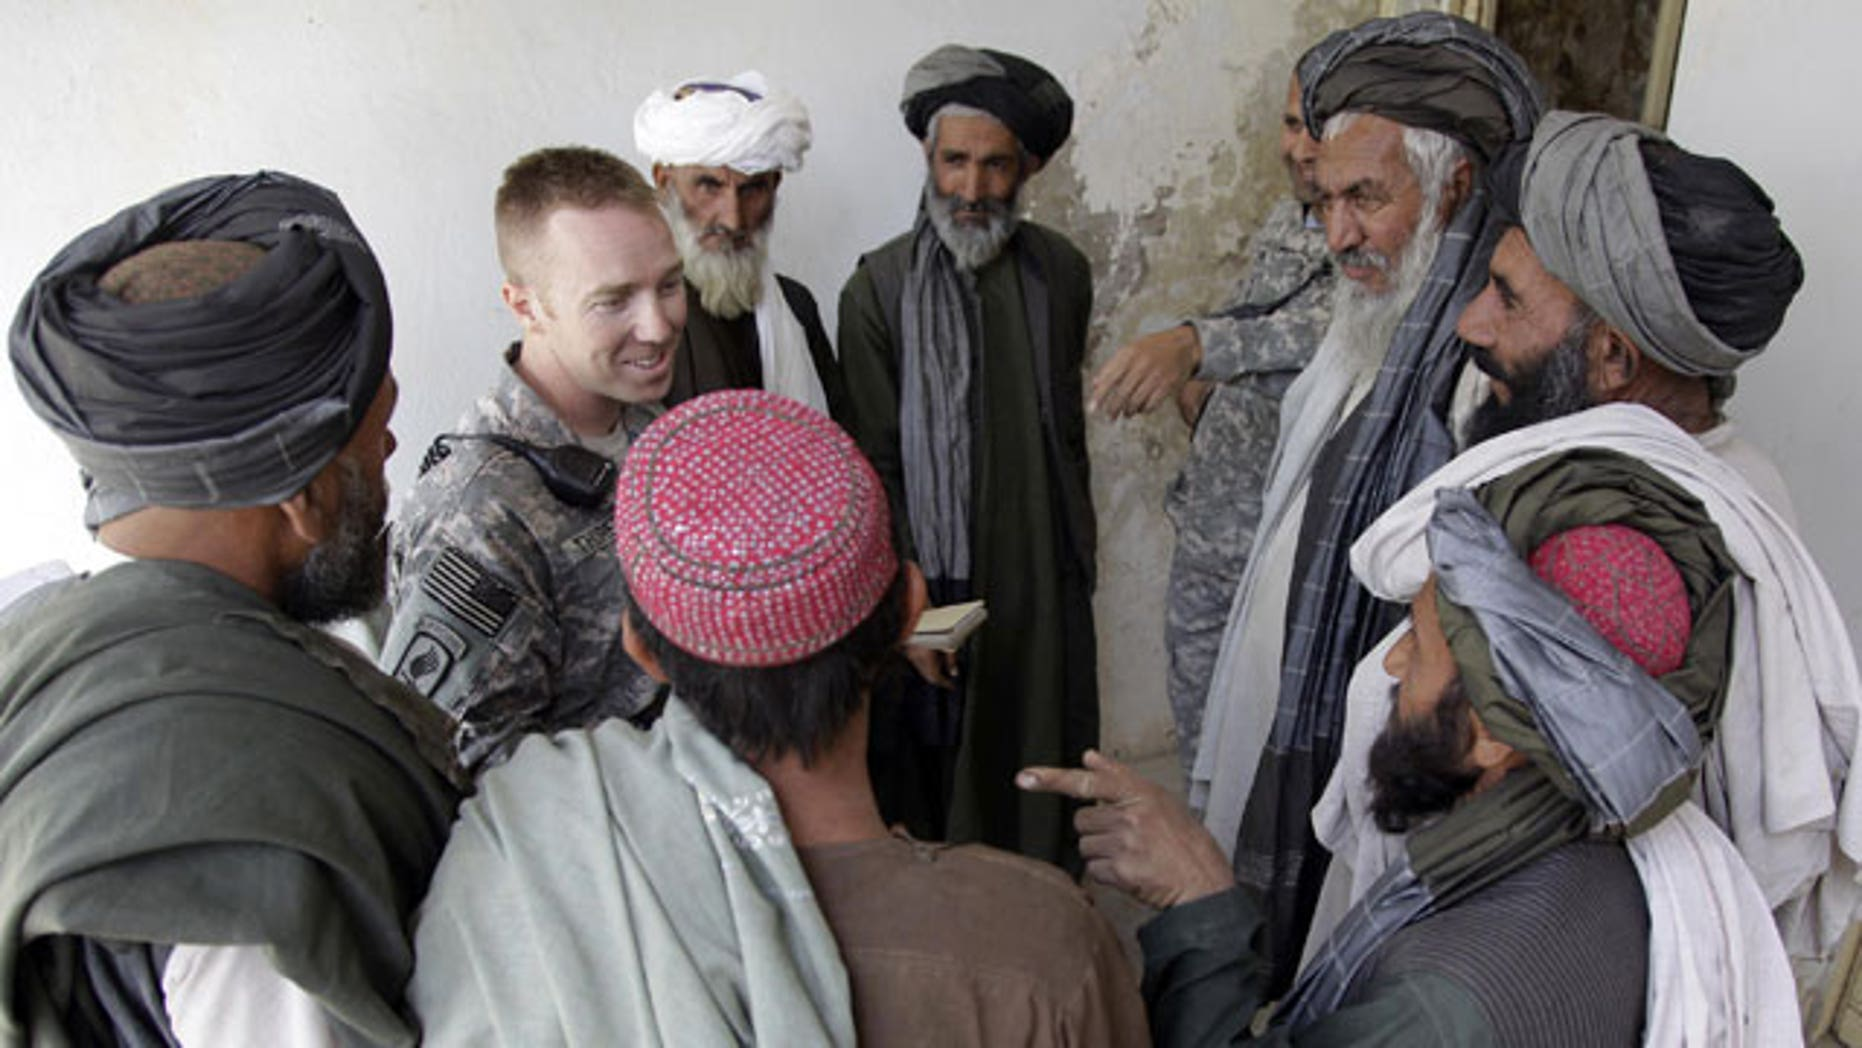 """In this Wednesday, April 28, 2010 photo, U.S. Army Capt. Casey Thoreen, second from left, of Seattle, Wash., Bravo Company, 2nd Battalion, 1st Infantry Regiment, 5th Stryker Brigade, talks with village leaders before the start of a shura , in the Maiwand district of Afghanistan's Kandahar province. To the locals, he is the """"King of Maiwand"""" district testimony to the fact that without the resources the young captain and others like him provide, local government in much of insurgency-ravaged southern Afghanistan could not function at all."""